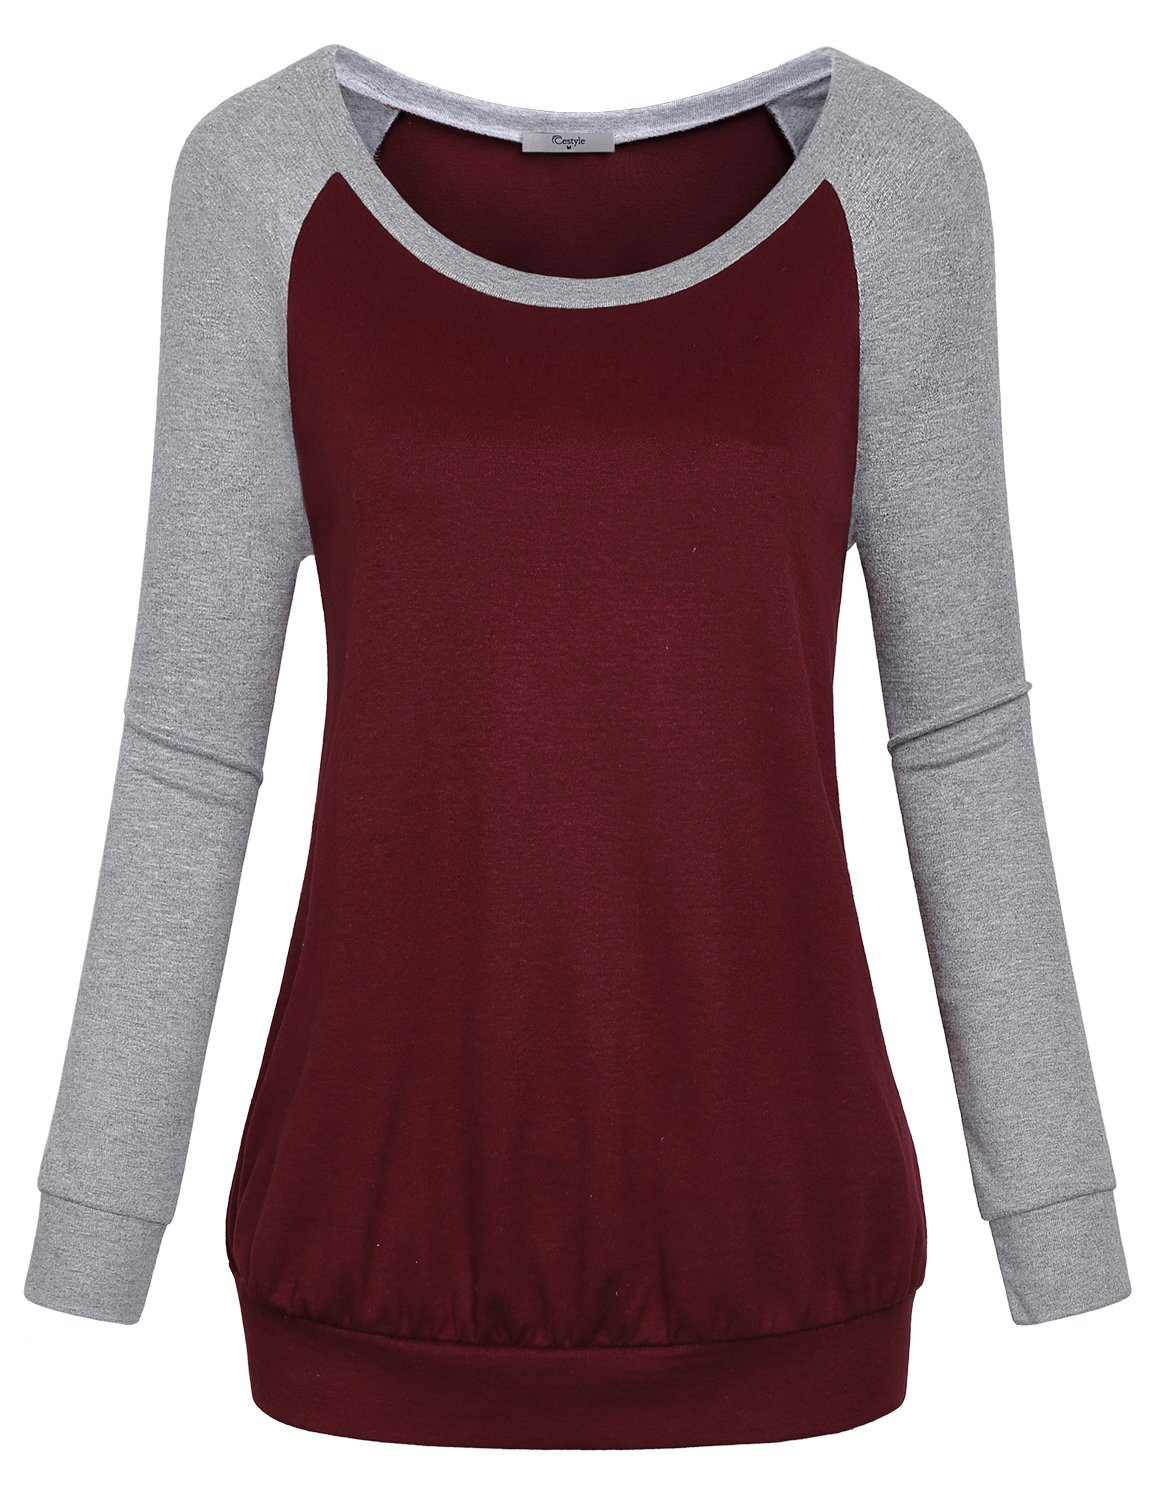 Cestyle Casual Sweaters for Women, Fall Long Sleeve Round Neck Splice Shirts Sports Loose Fit Cotton Knitted Cute Tunic Sweatshirts Loft Clothing Wine X-Large